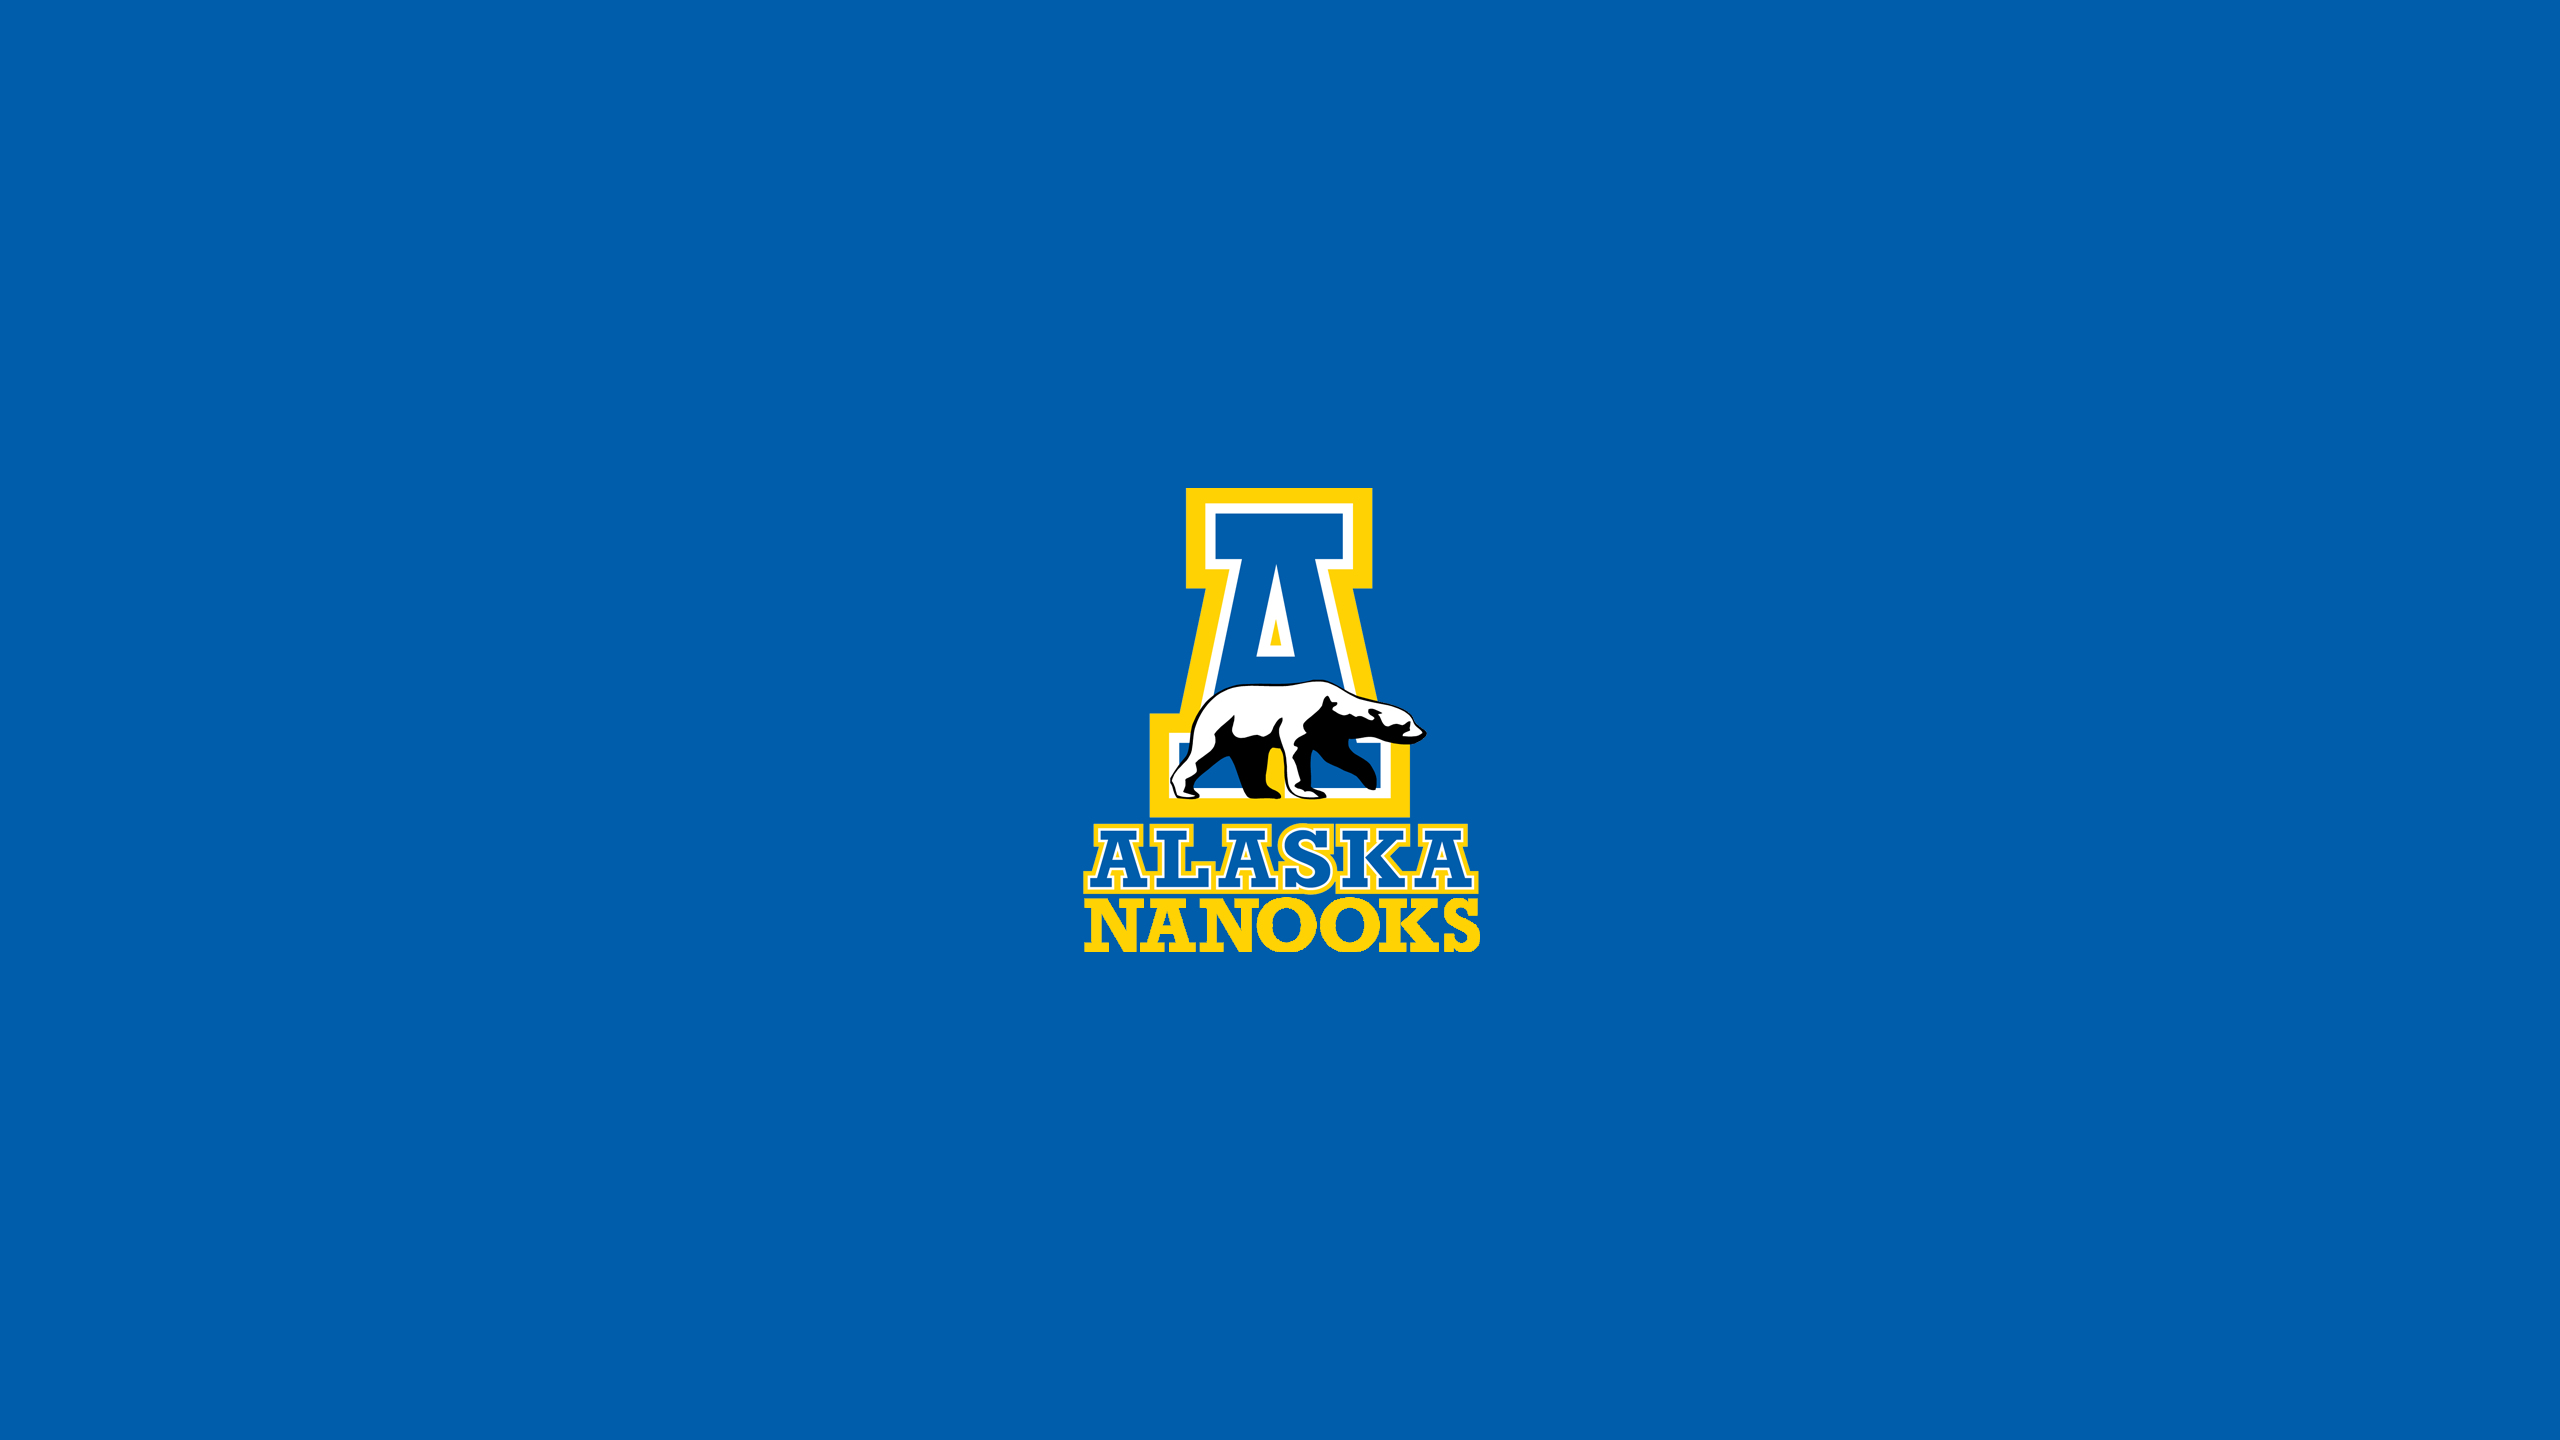 University of Alaska (Fairbanks) Nanooks